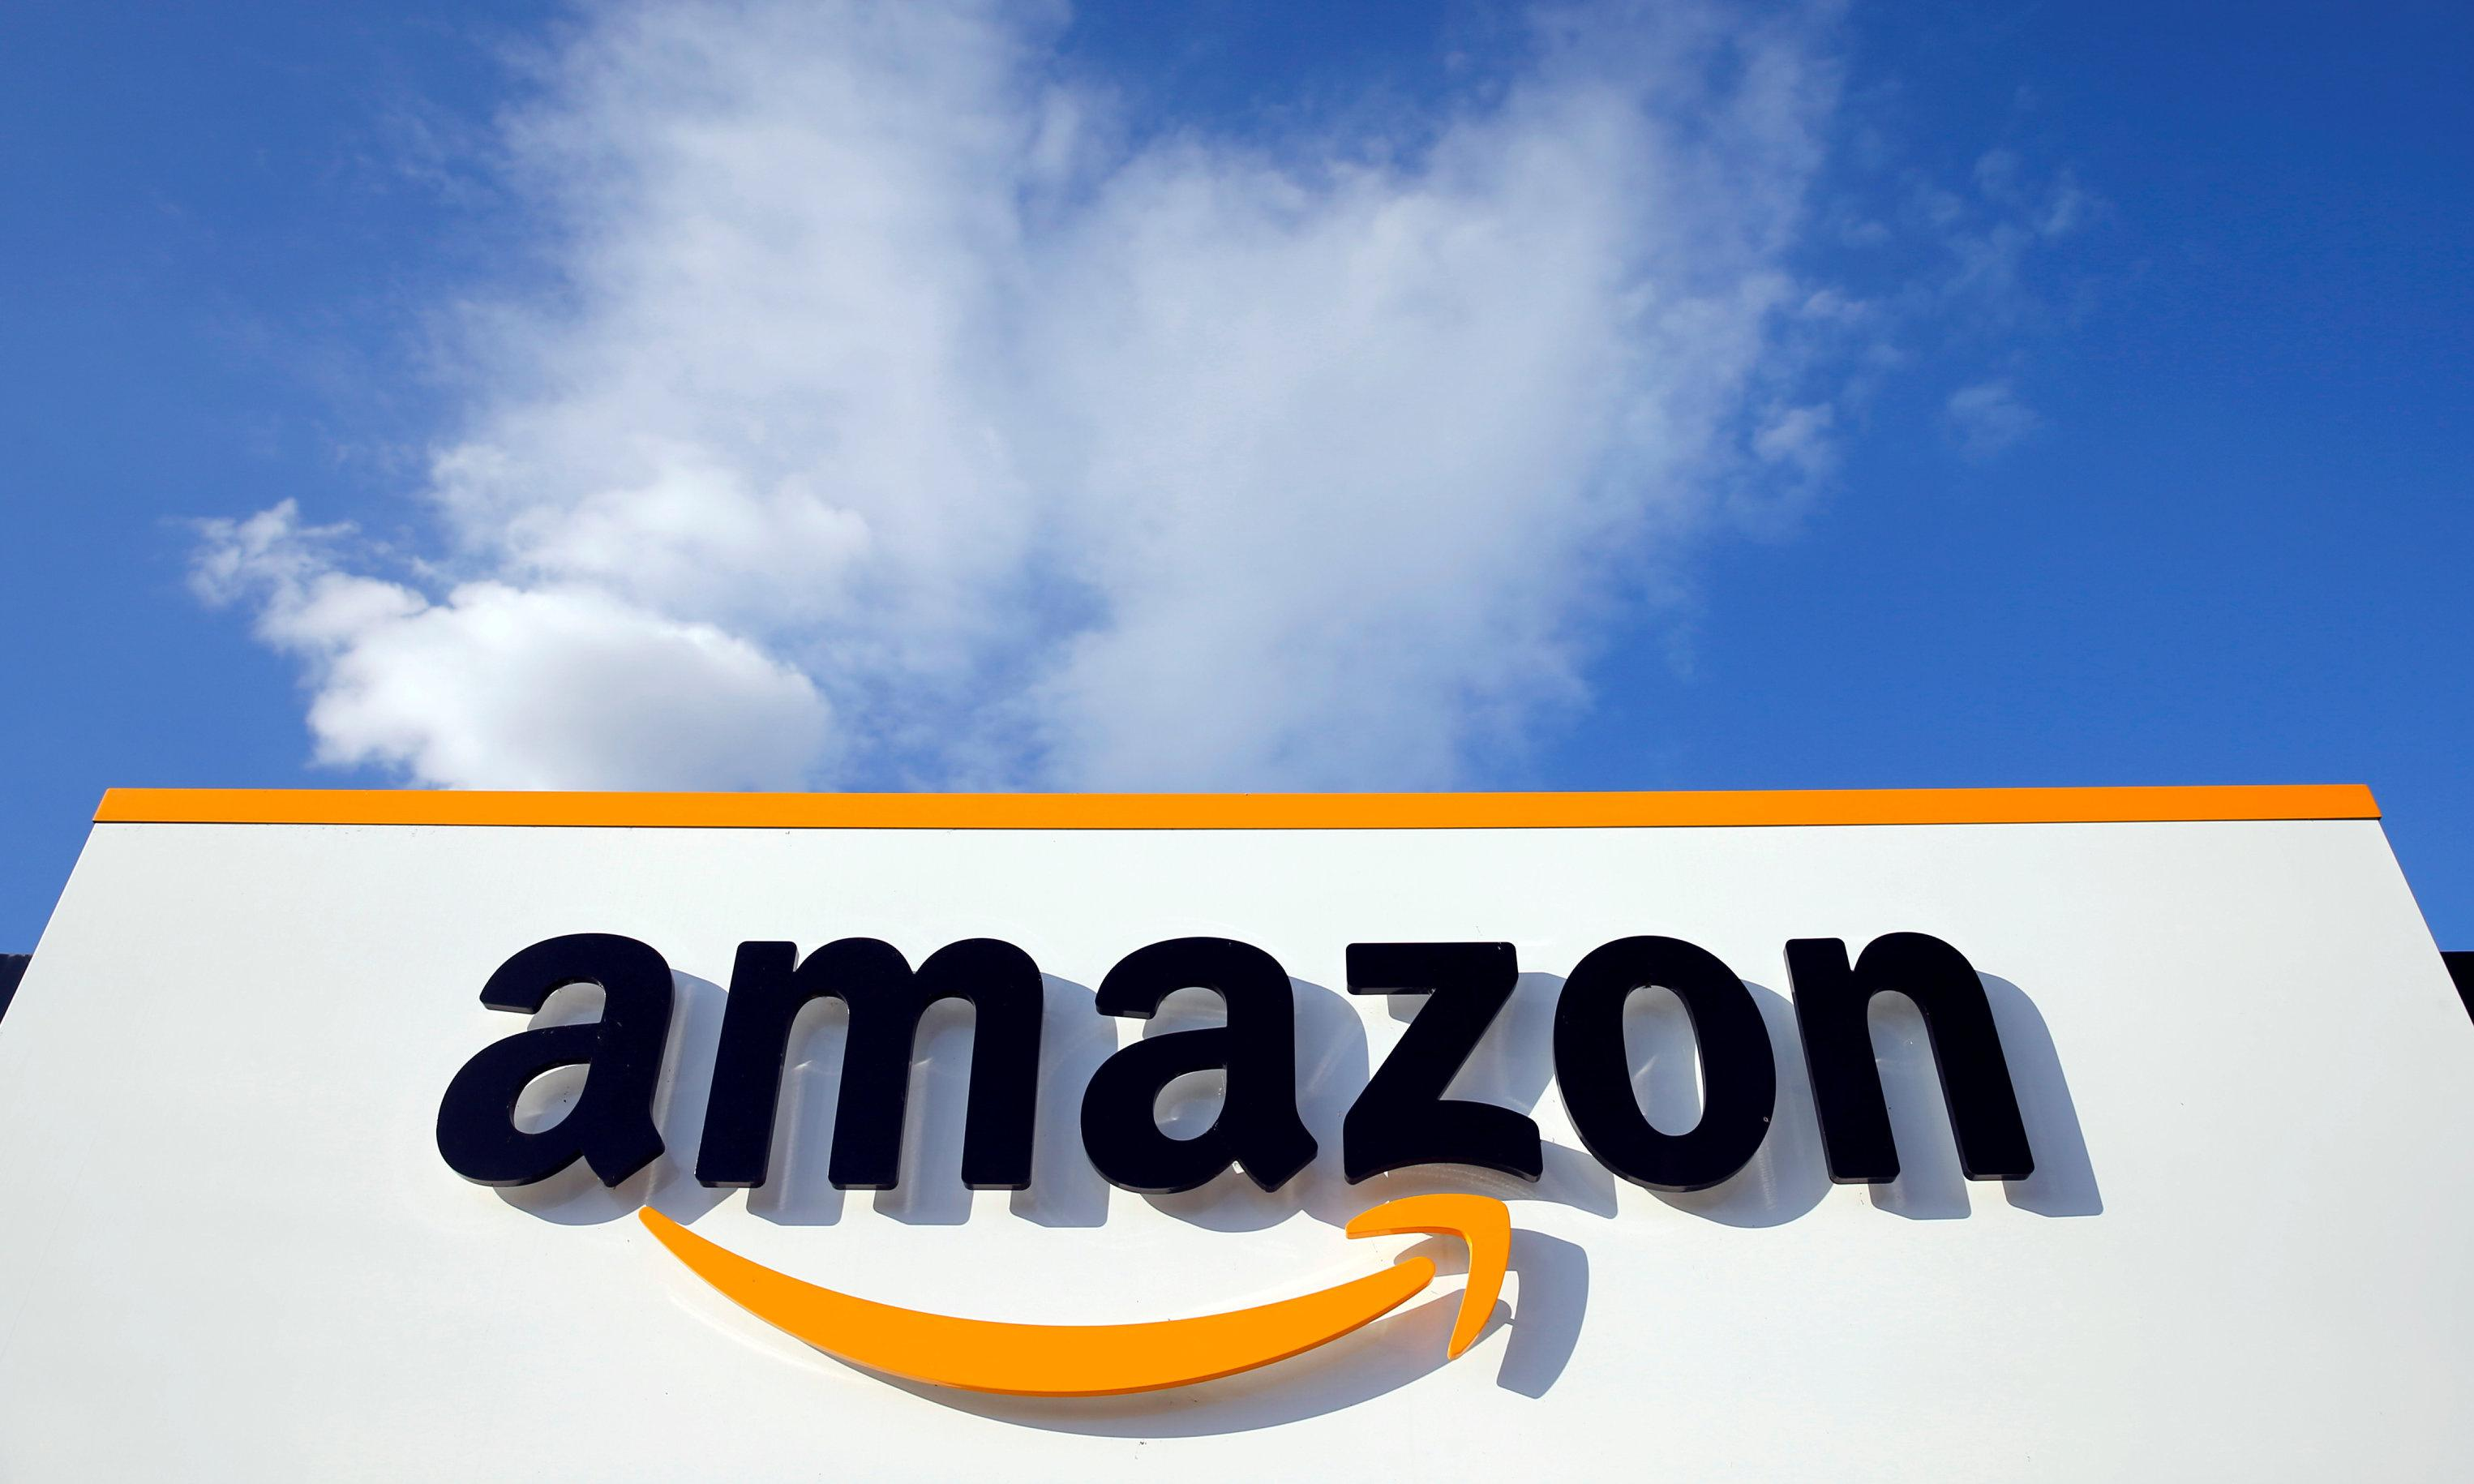 Amazon confirms it pays UK business rates of only £63.4m